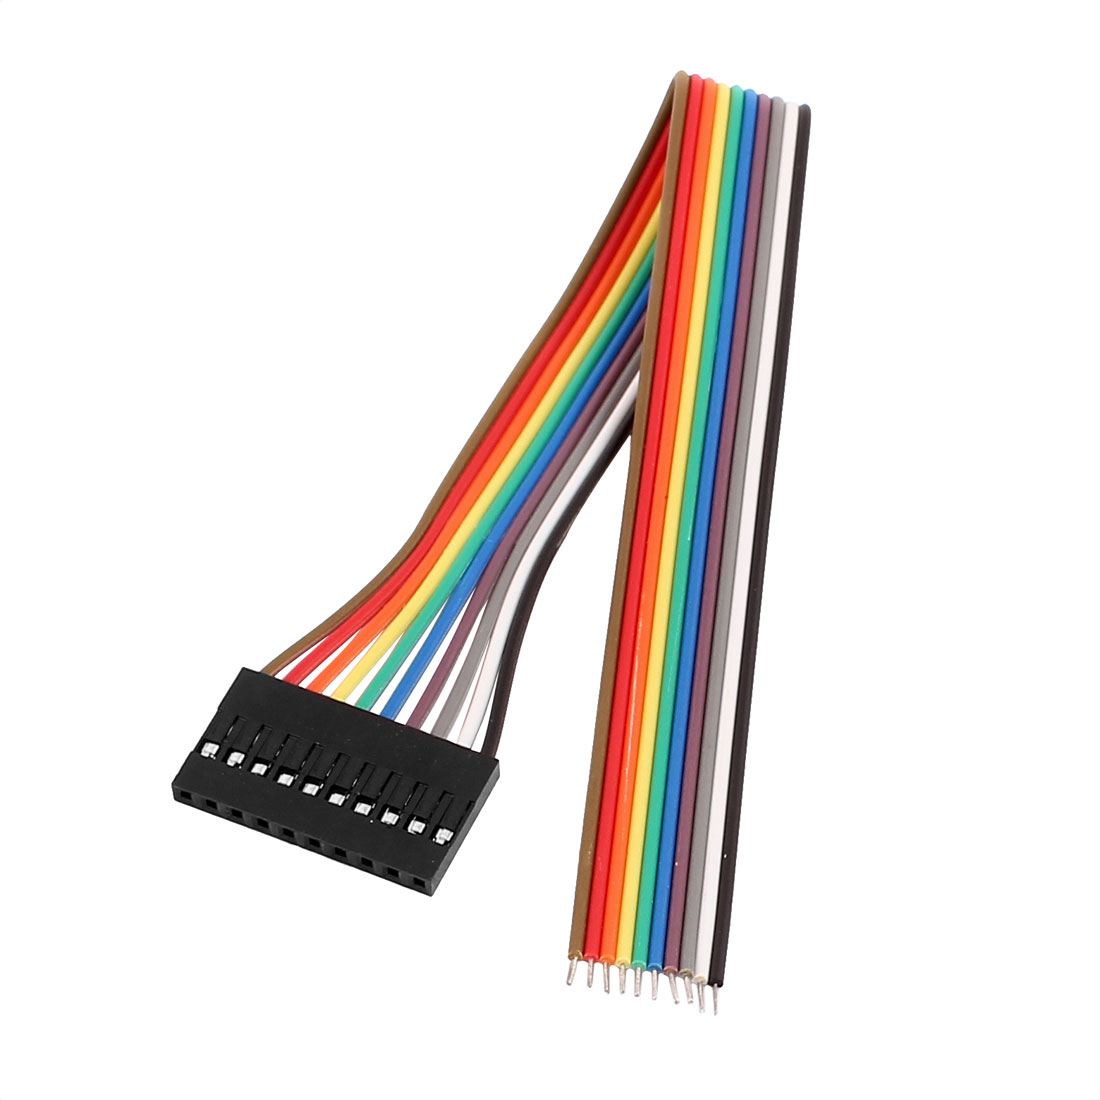 Female 10P Jumper Wire Ribbon Cable Pi Pic Breadboard DIY 20cm Long